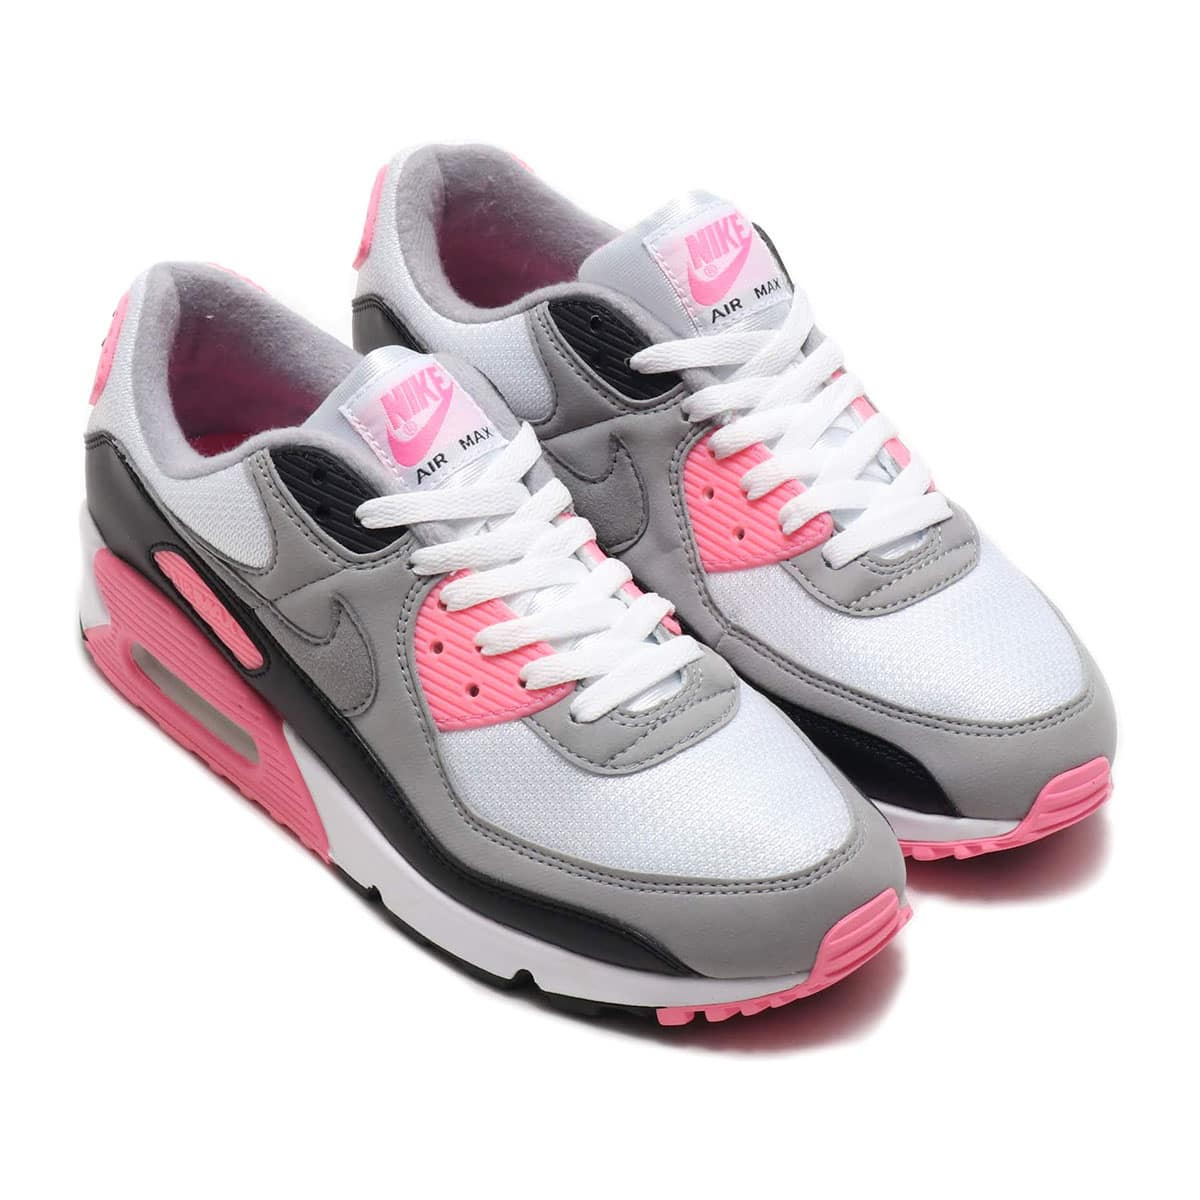 NIKE AIR MAX 90 WHITE/PARTICLE GREY-ROSE-BLACK 20SP-S_photo_large